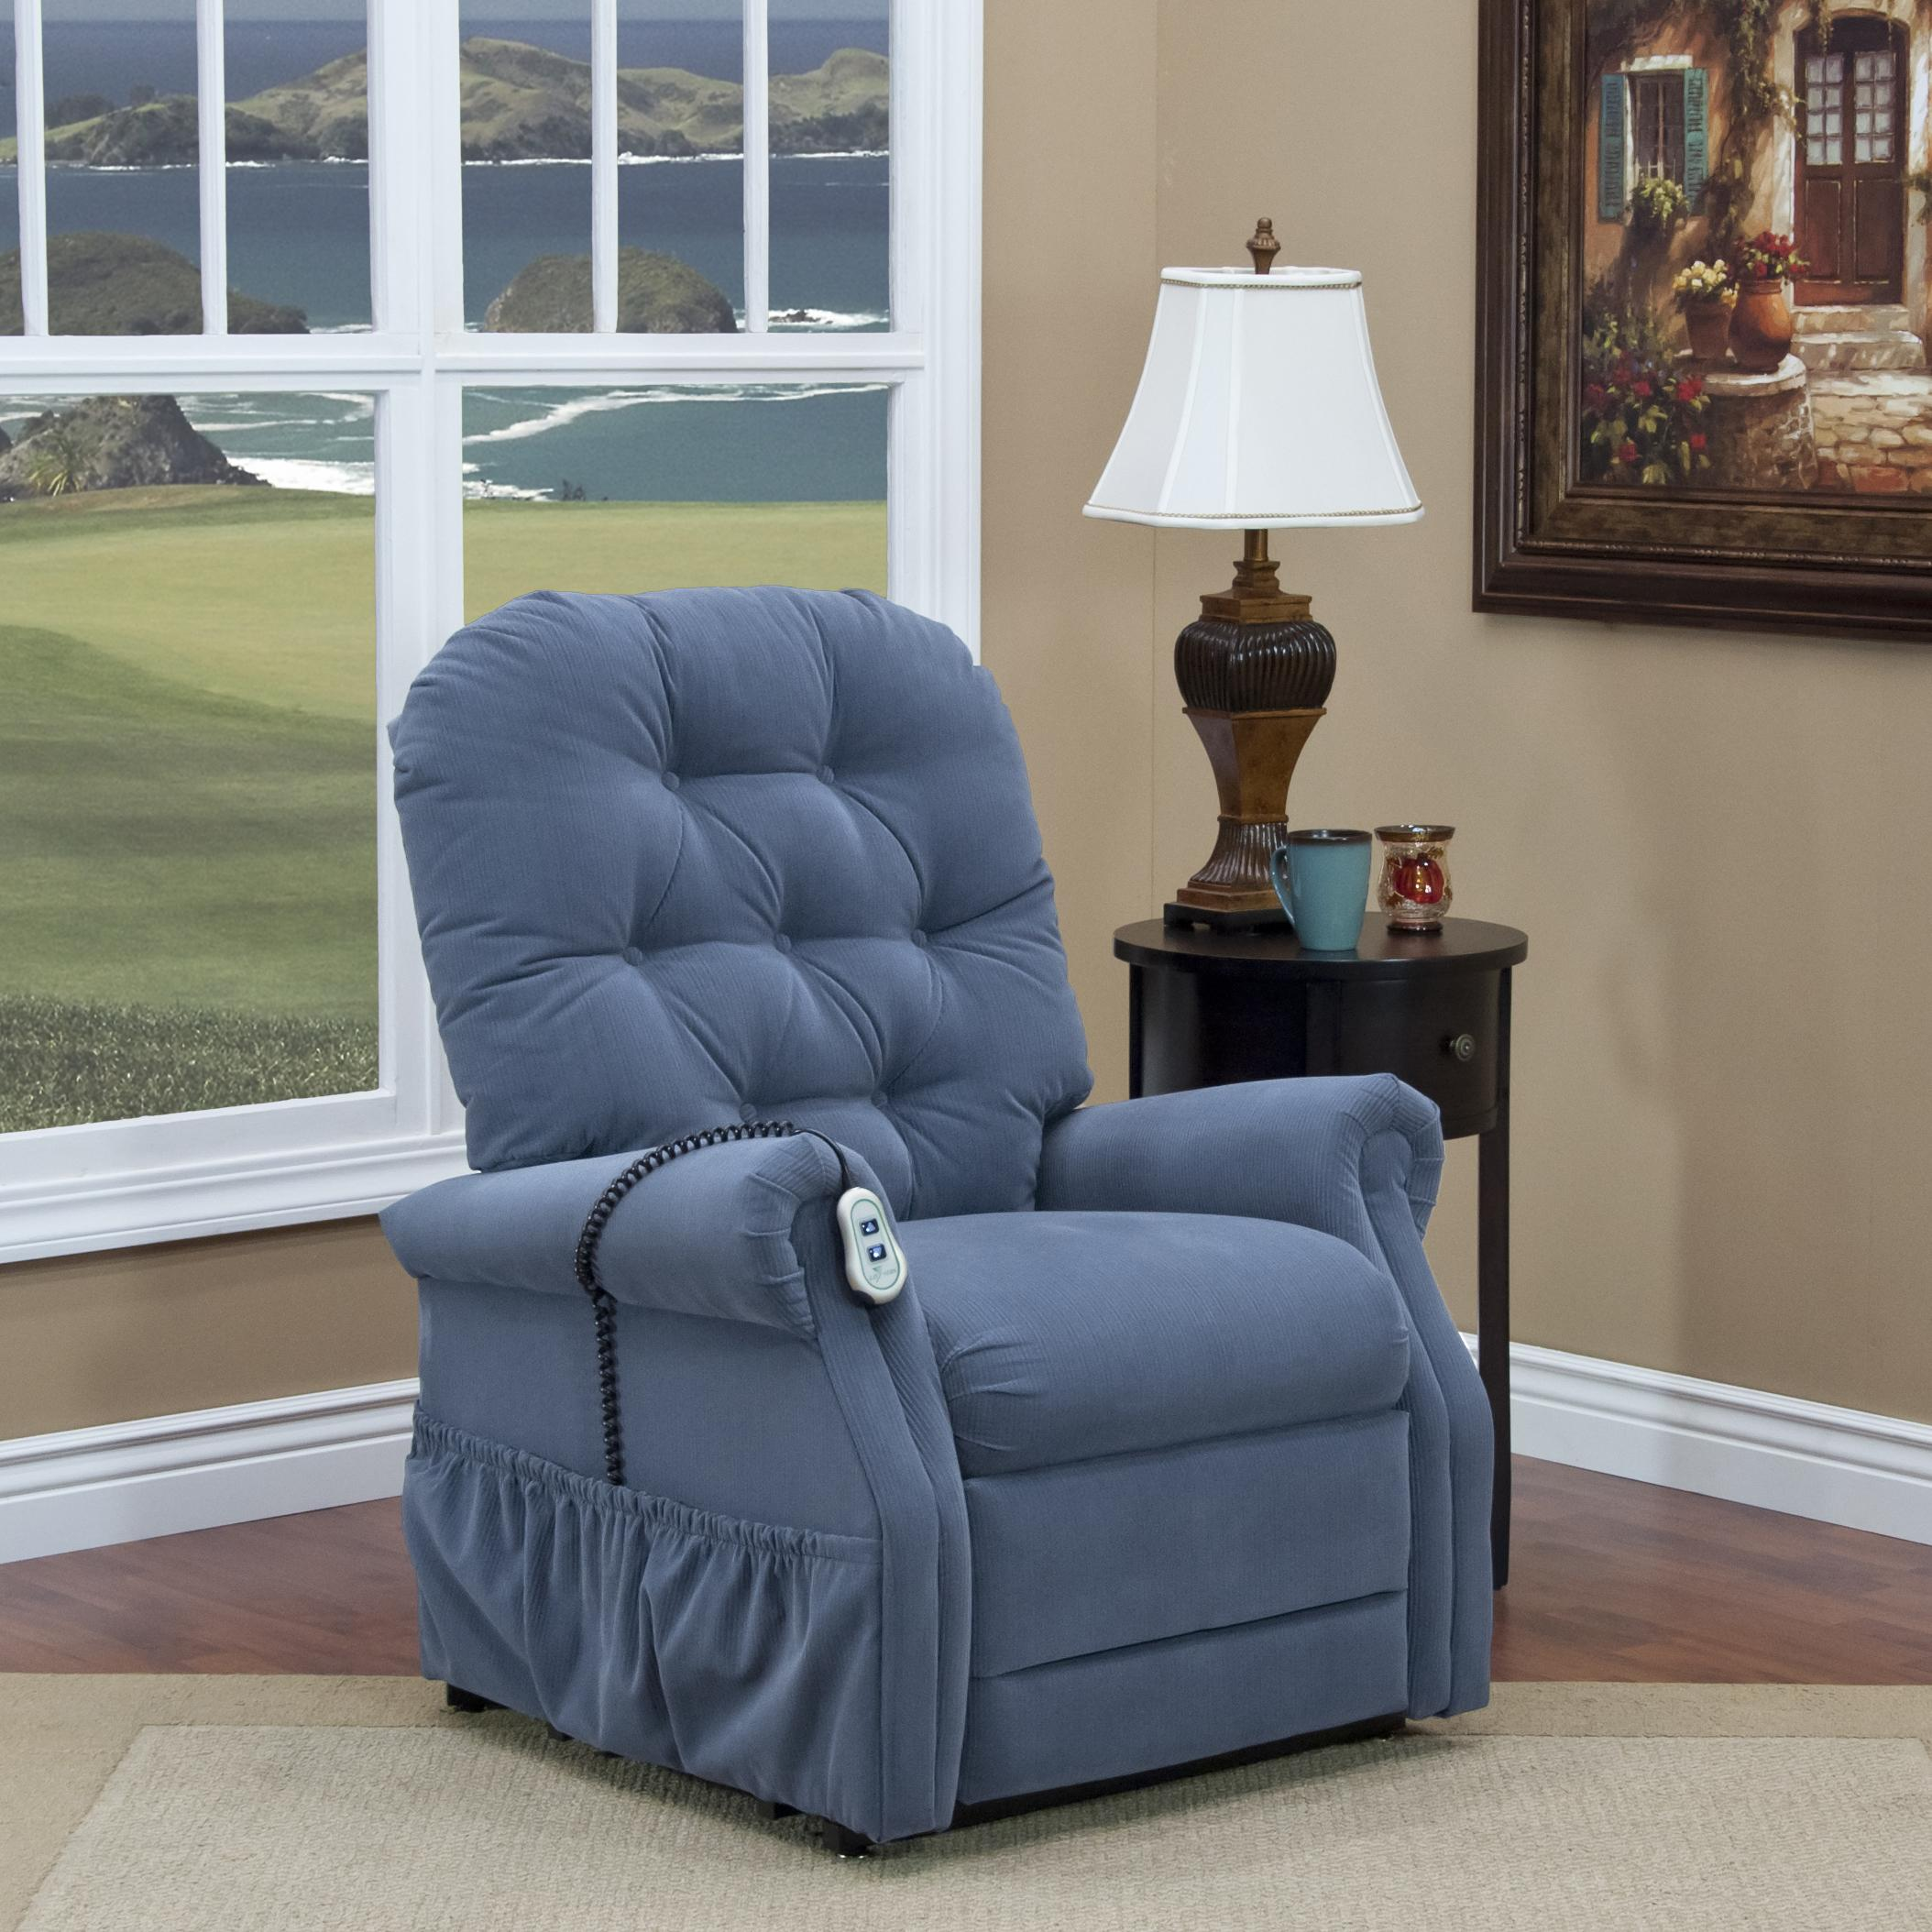 2555 Lift Recliner by Med-Lift & Mobility at Story & Lee Furniture